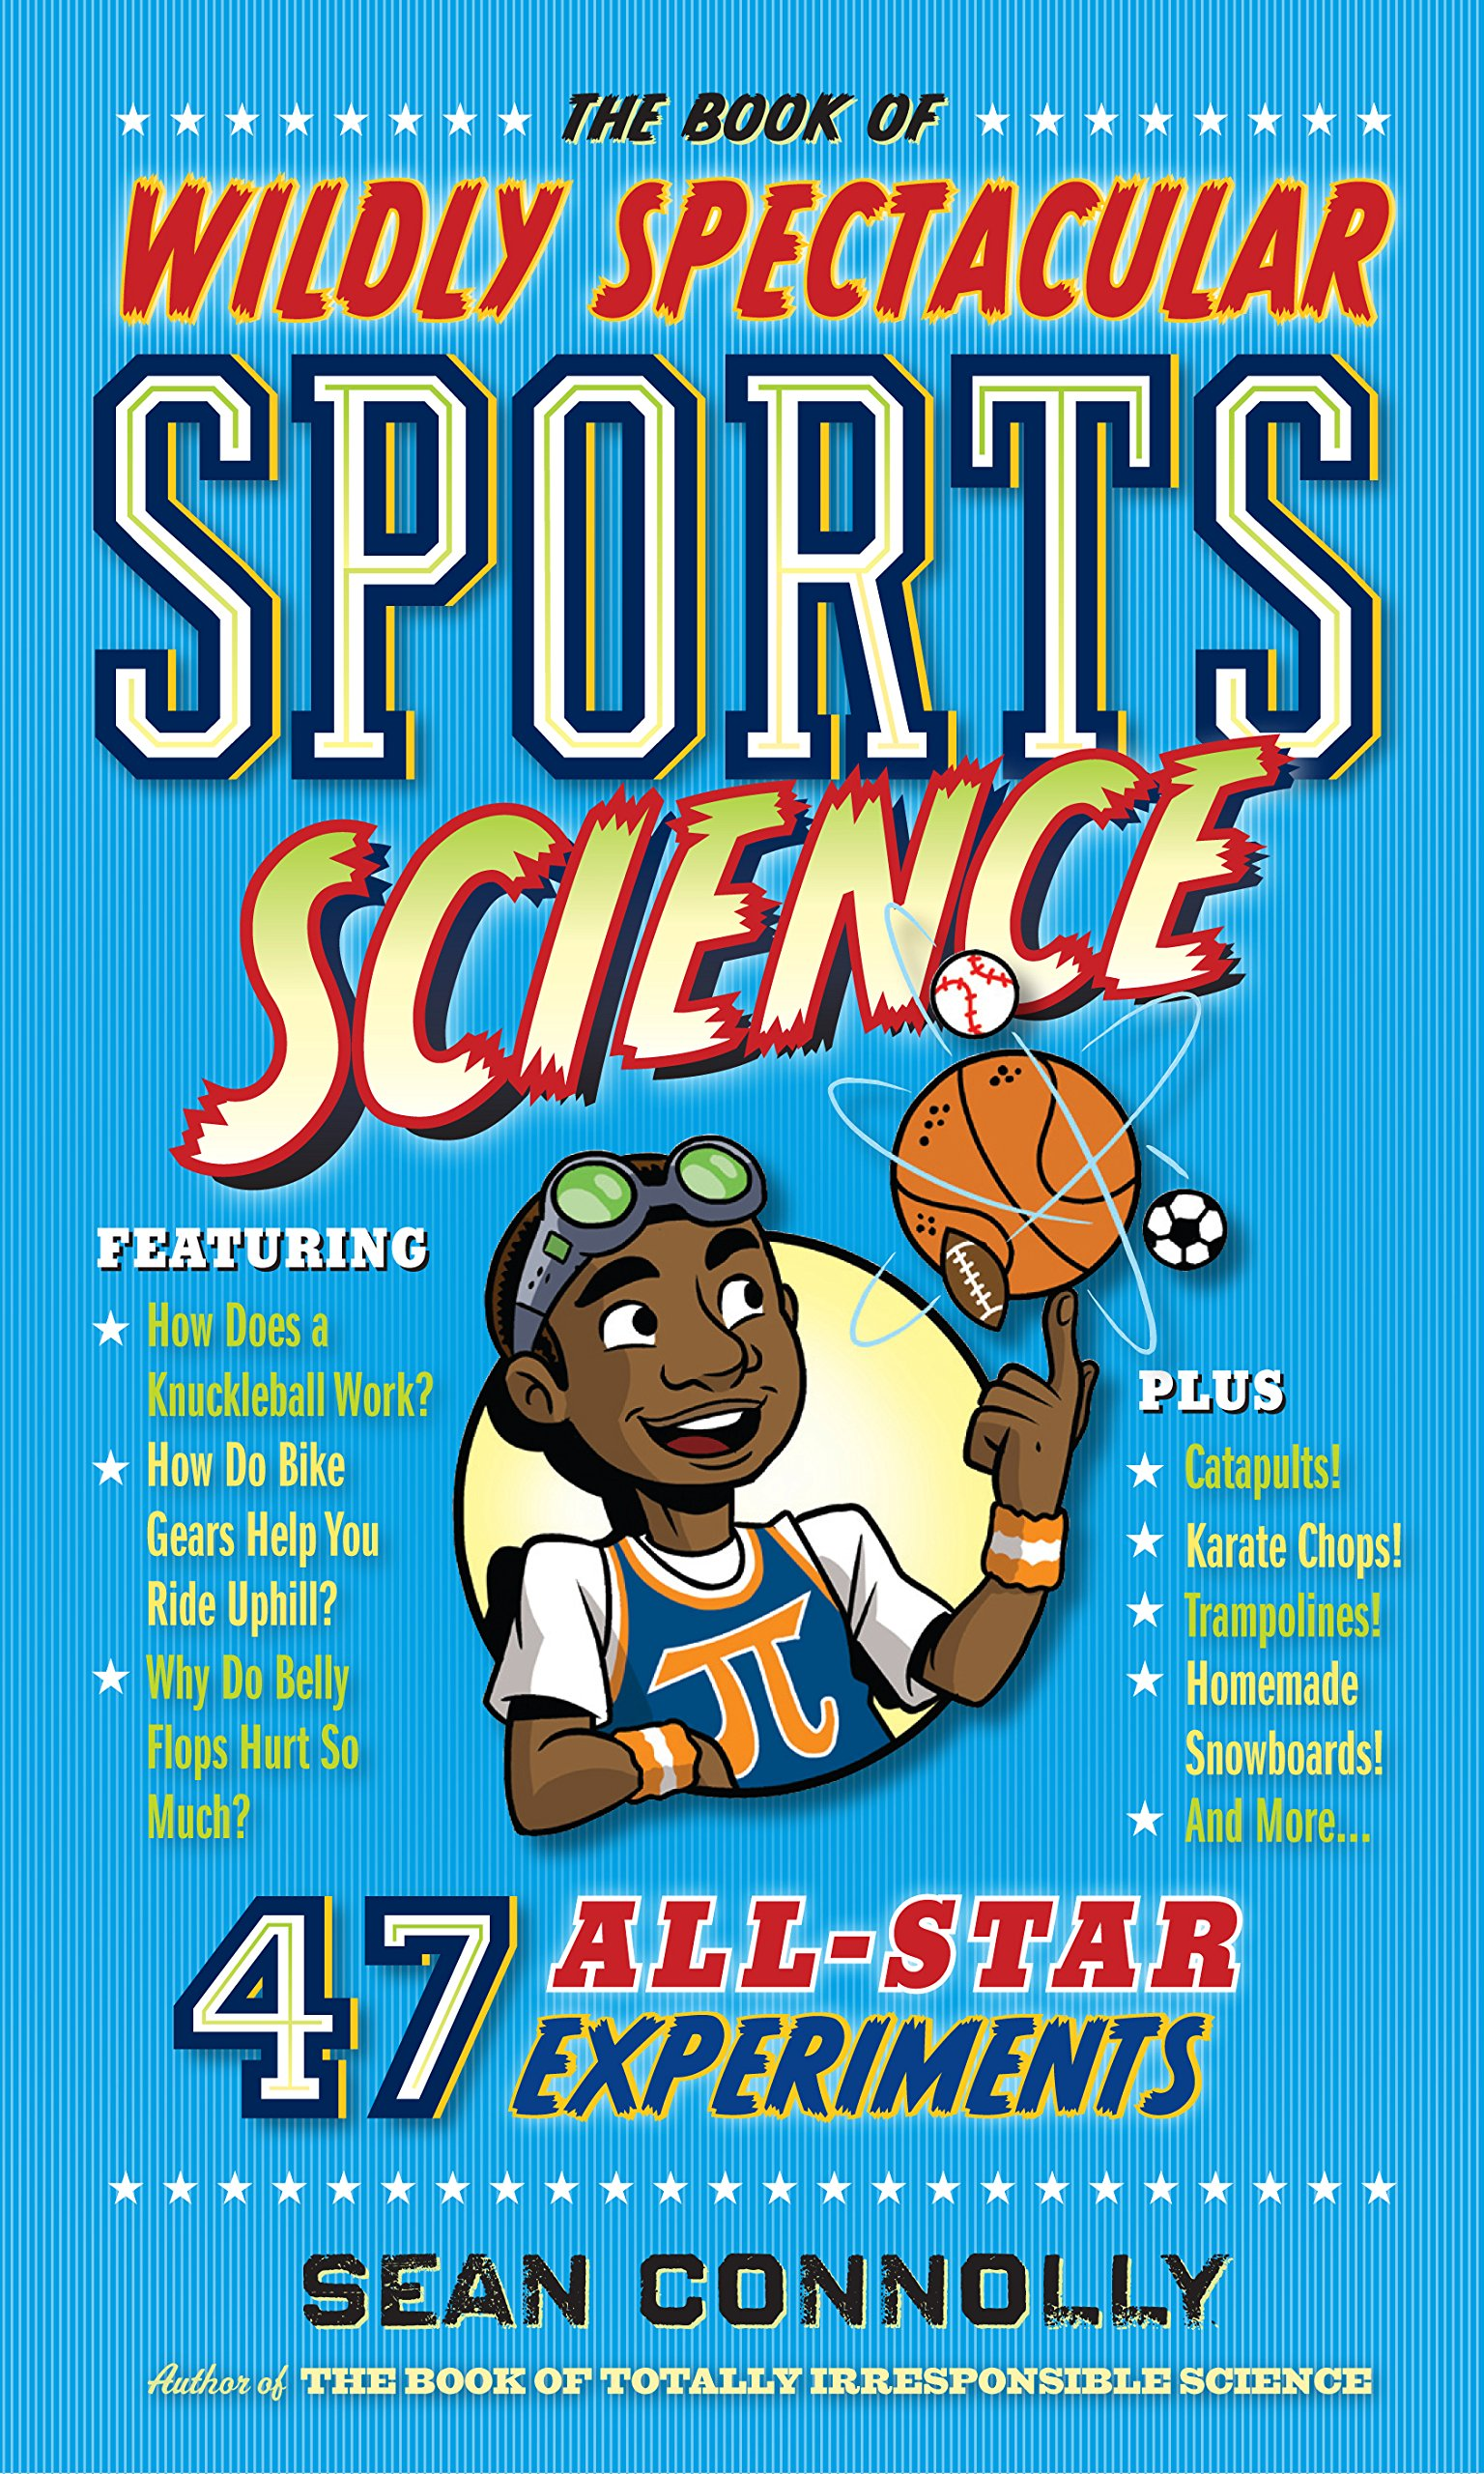 Read Online The Book of Wildly Spectacular Sports Science: 54 All-Star Experiments (Irresponsible Science) PDF